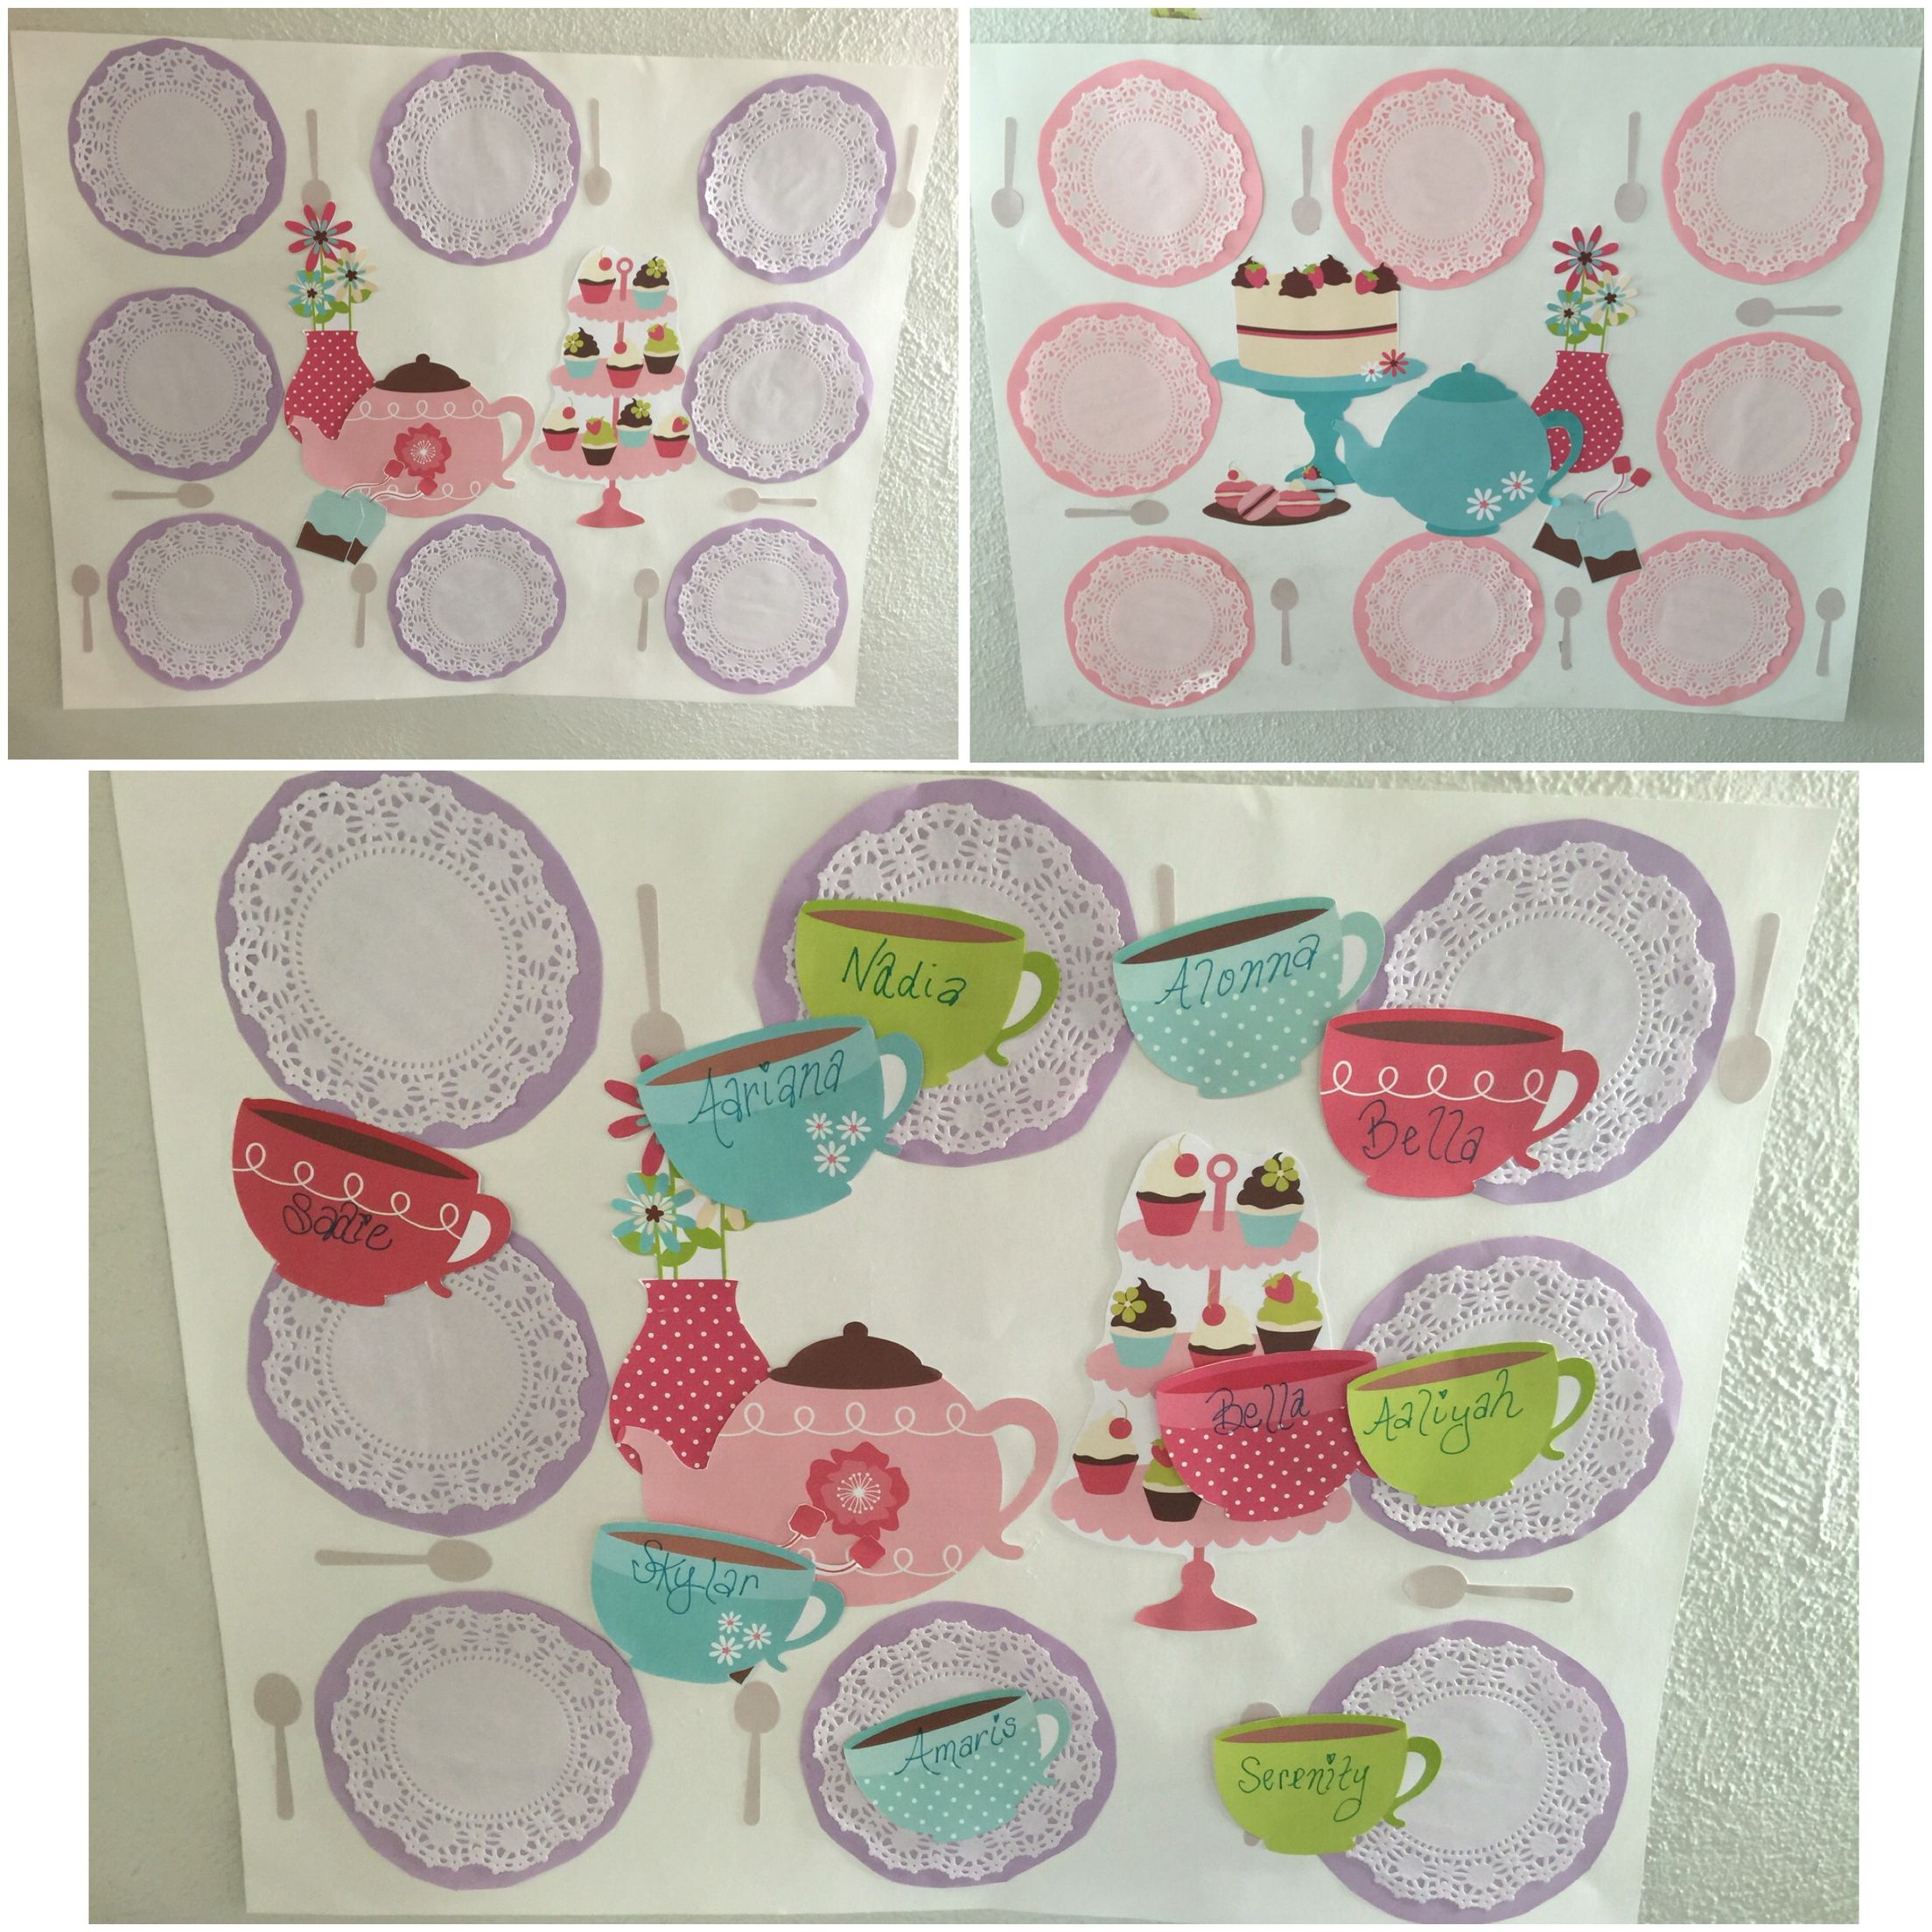 Pin The Cup On The Saucer Tea Party Game Idea We Had 2 Set Up One